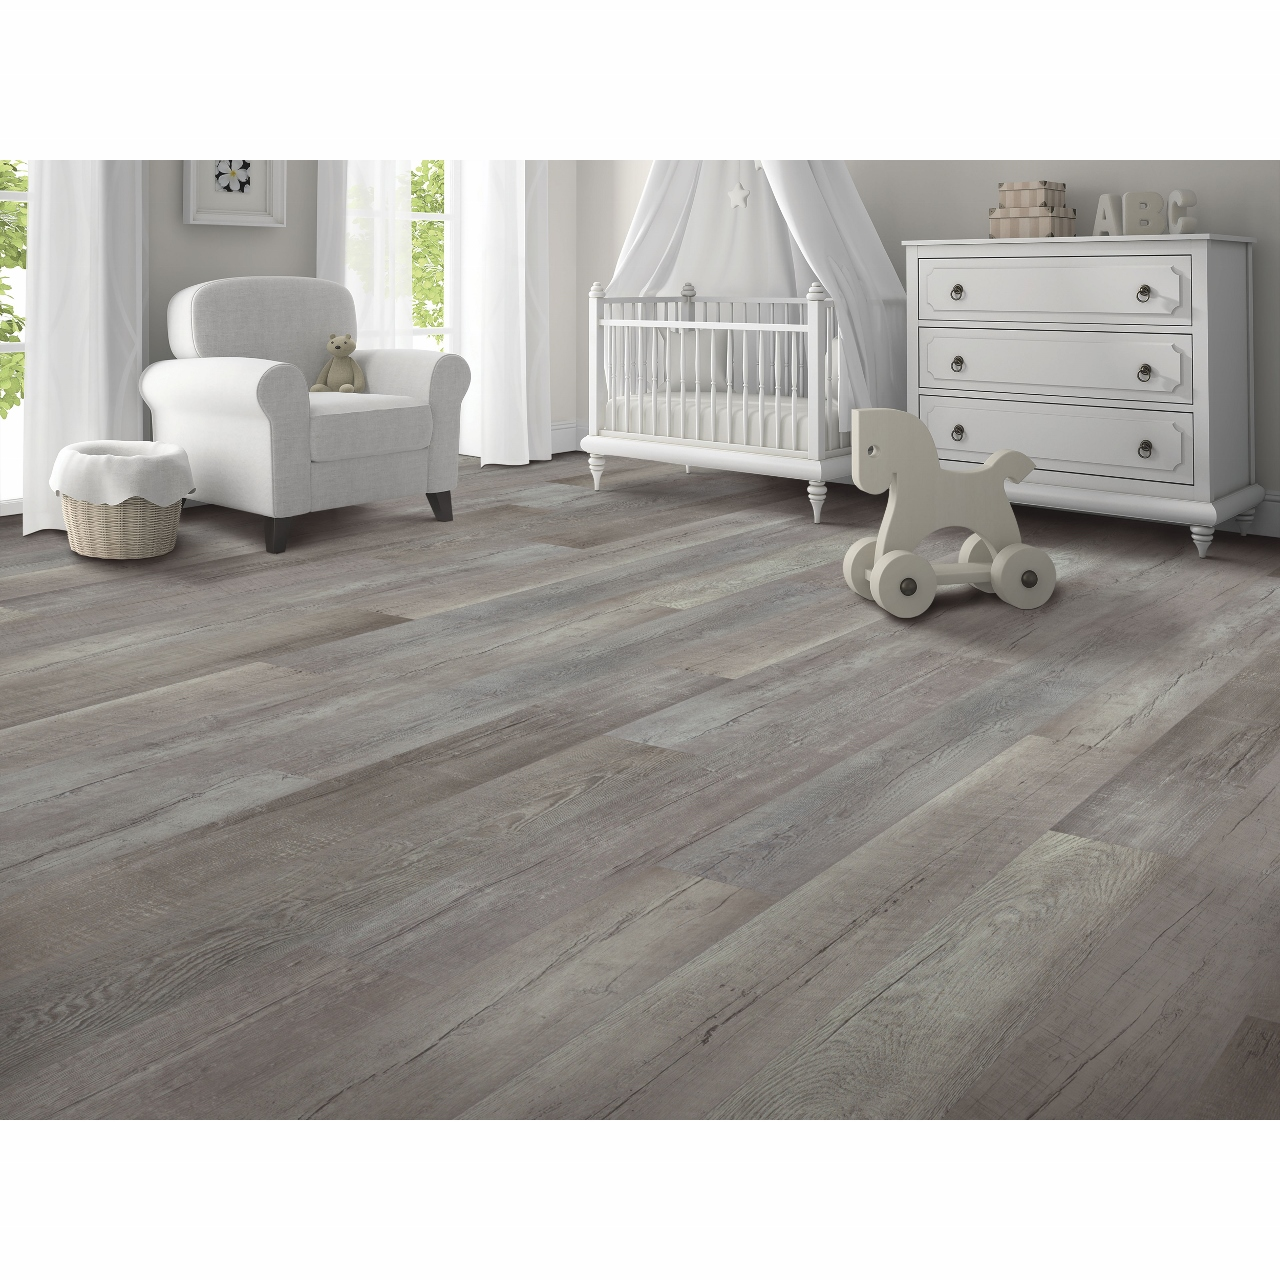 Mohawk True Design Weathered Grey Vinyl Flooring